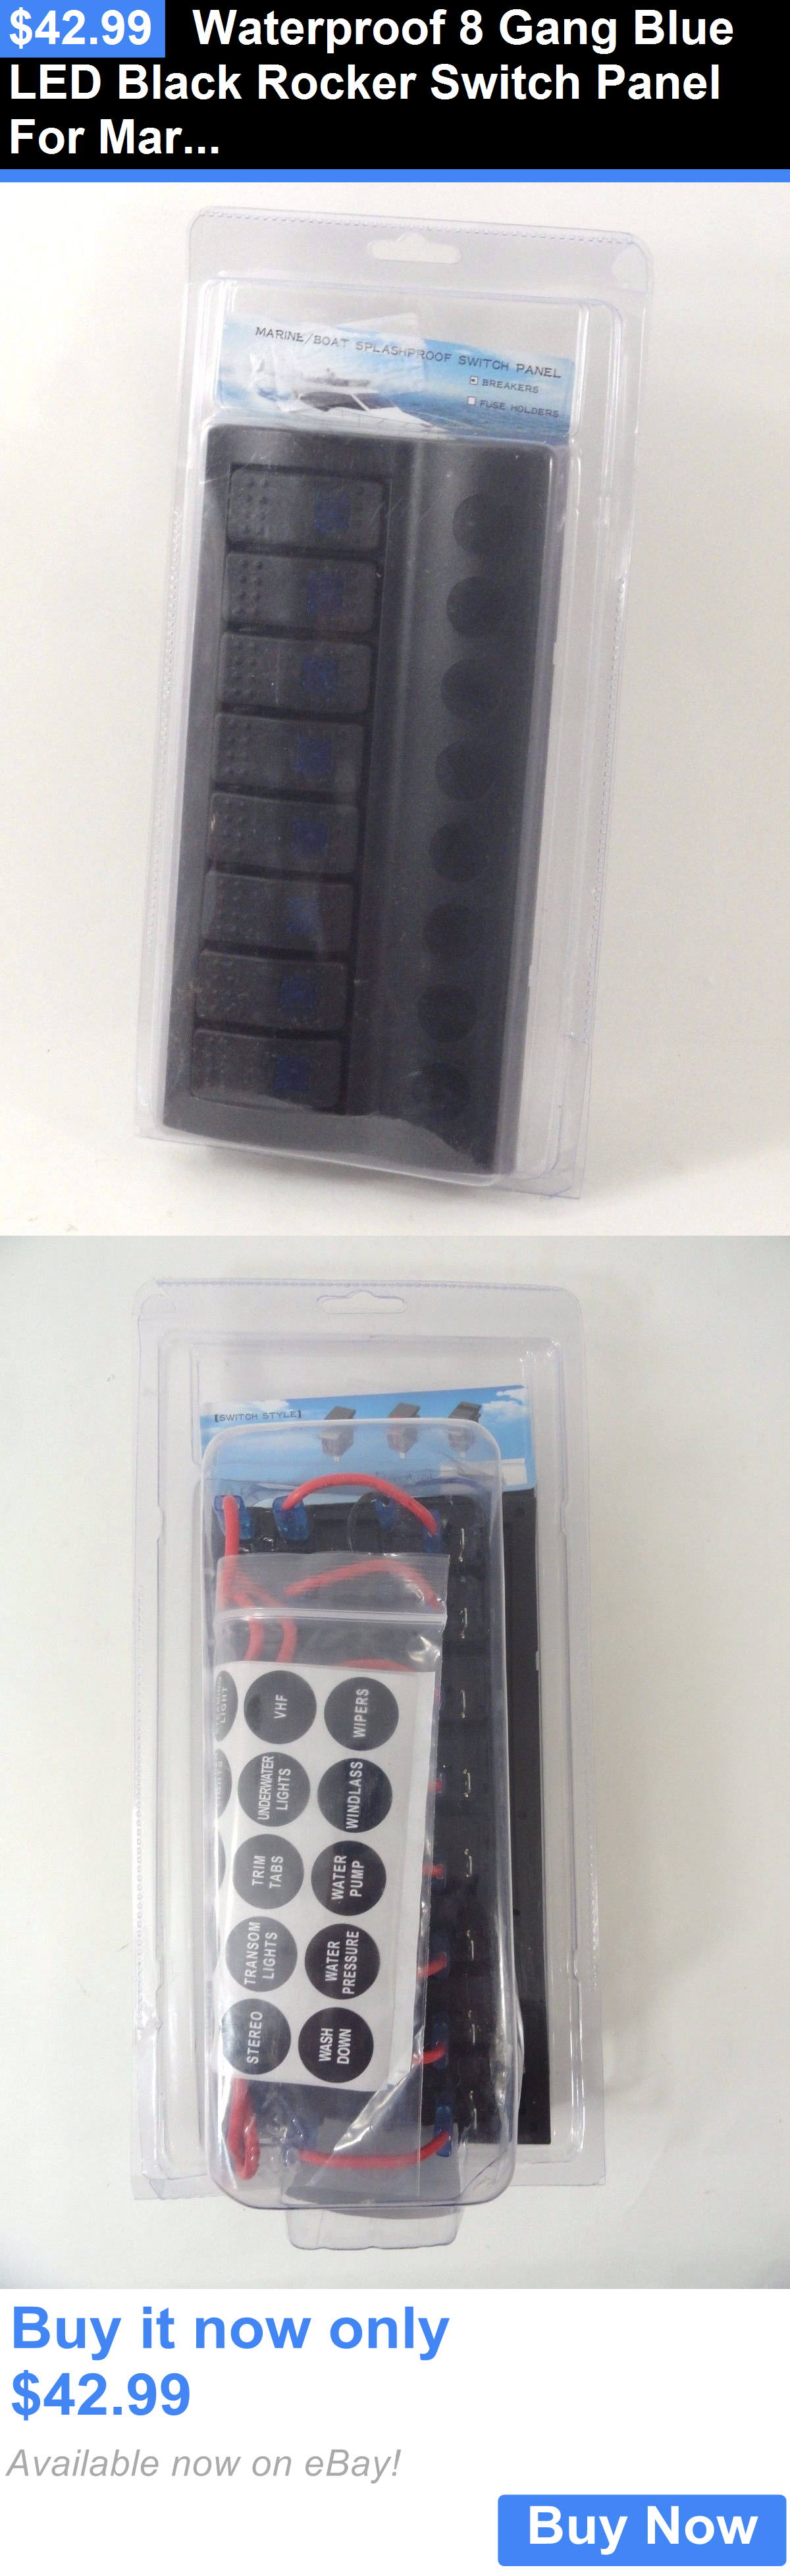 Boat Parts Waterproof 8 Gang Blue Led Black Rocker Switch Panel For Marine Circuit Breaker 4 Switches Ebay Caravan Buy It Now Only 4299 Pinterest